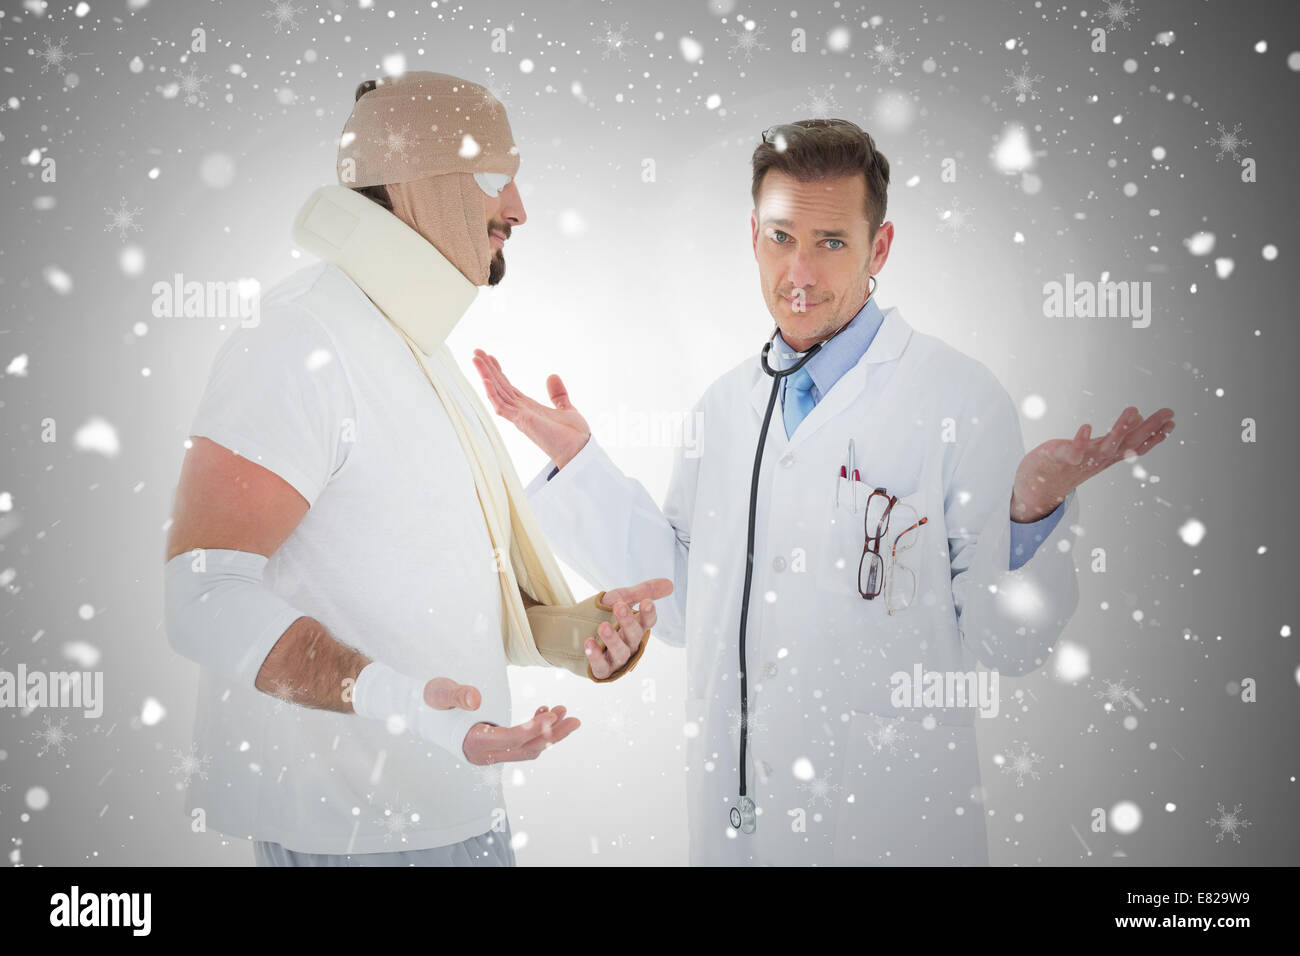 Portrait of a doctor with patient tied up in bandage - Stock Image